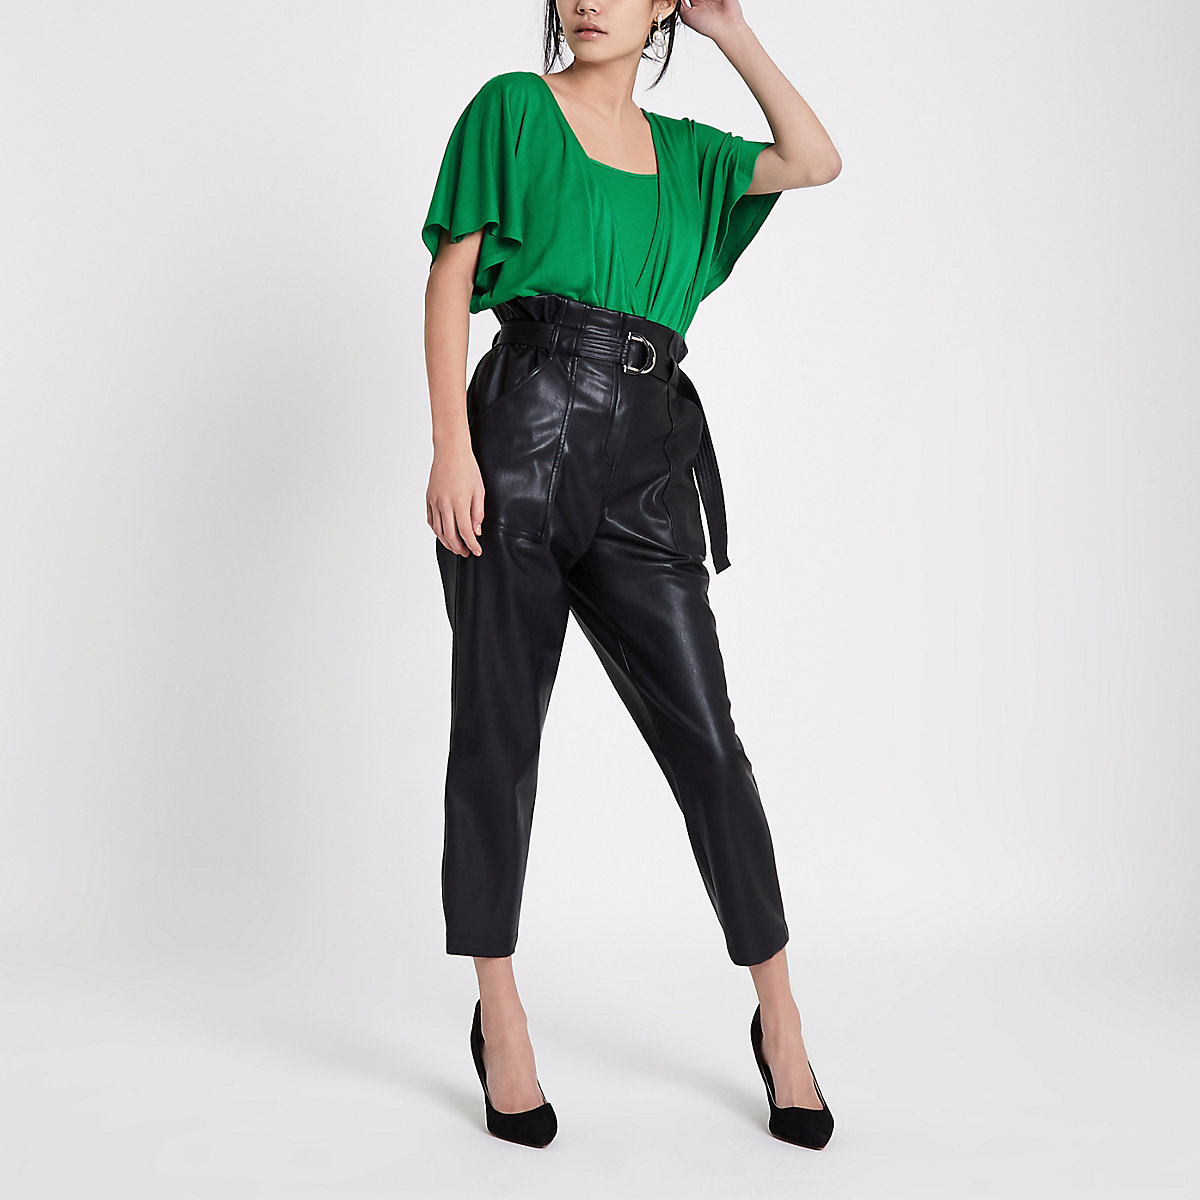 Green double layer batwing bodysuit